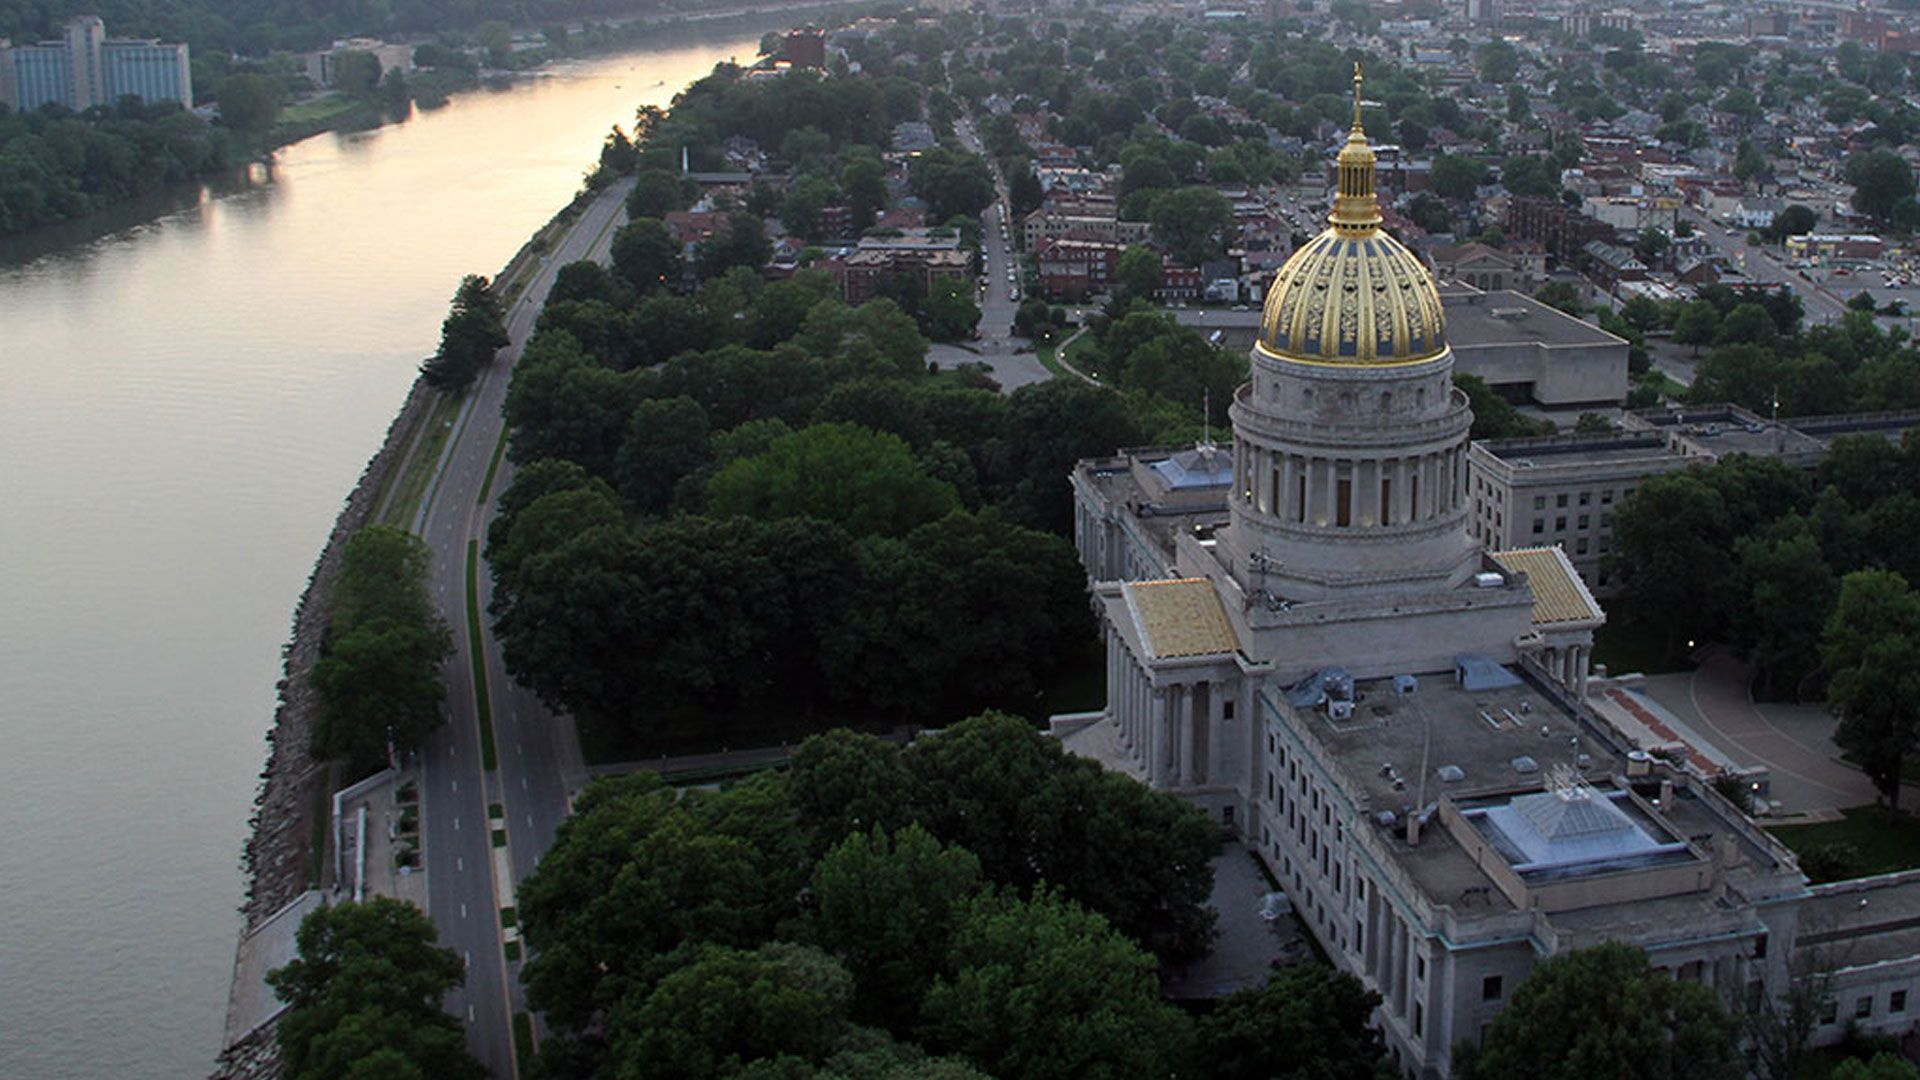 """Aerial America:West Virginia. It's where the Appalachian, Blue Ridge, and Allegheny Mountains converge, and where a fiercely independent spirit, forged during the Civil War, still lives today. From a legendary resort that hid a top-secret bunker to a futuristic facility exploring the mysteries of the universe, to thrill-seekers riding the Class-5 rapids and climbing its famous bluffs, this flight across the state's towering peaks reveals why John Denver called it """"almost heaven."""""""